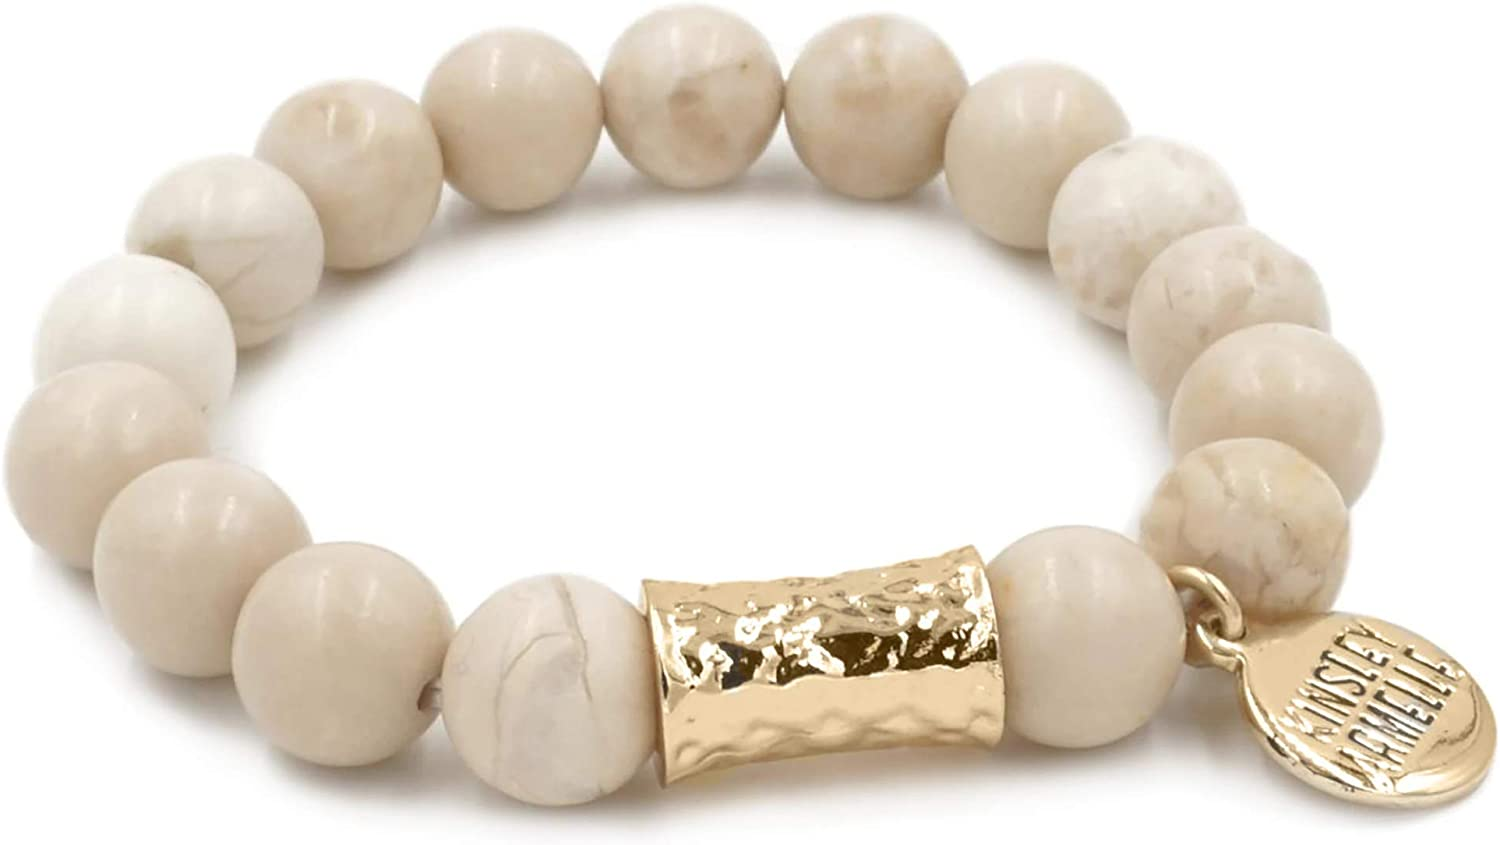 Kinsley Armelle Cyprus Collection Wholesale Ranking TOP9 - Tawny Bracelet